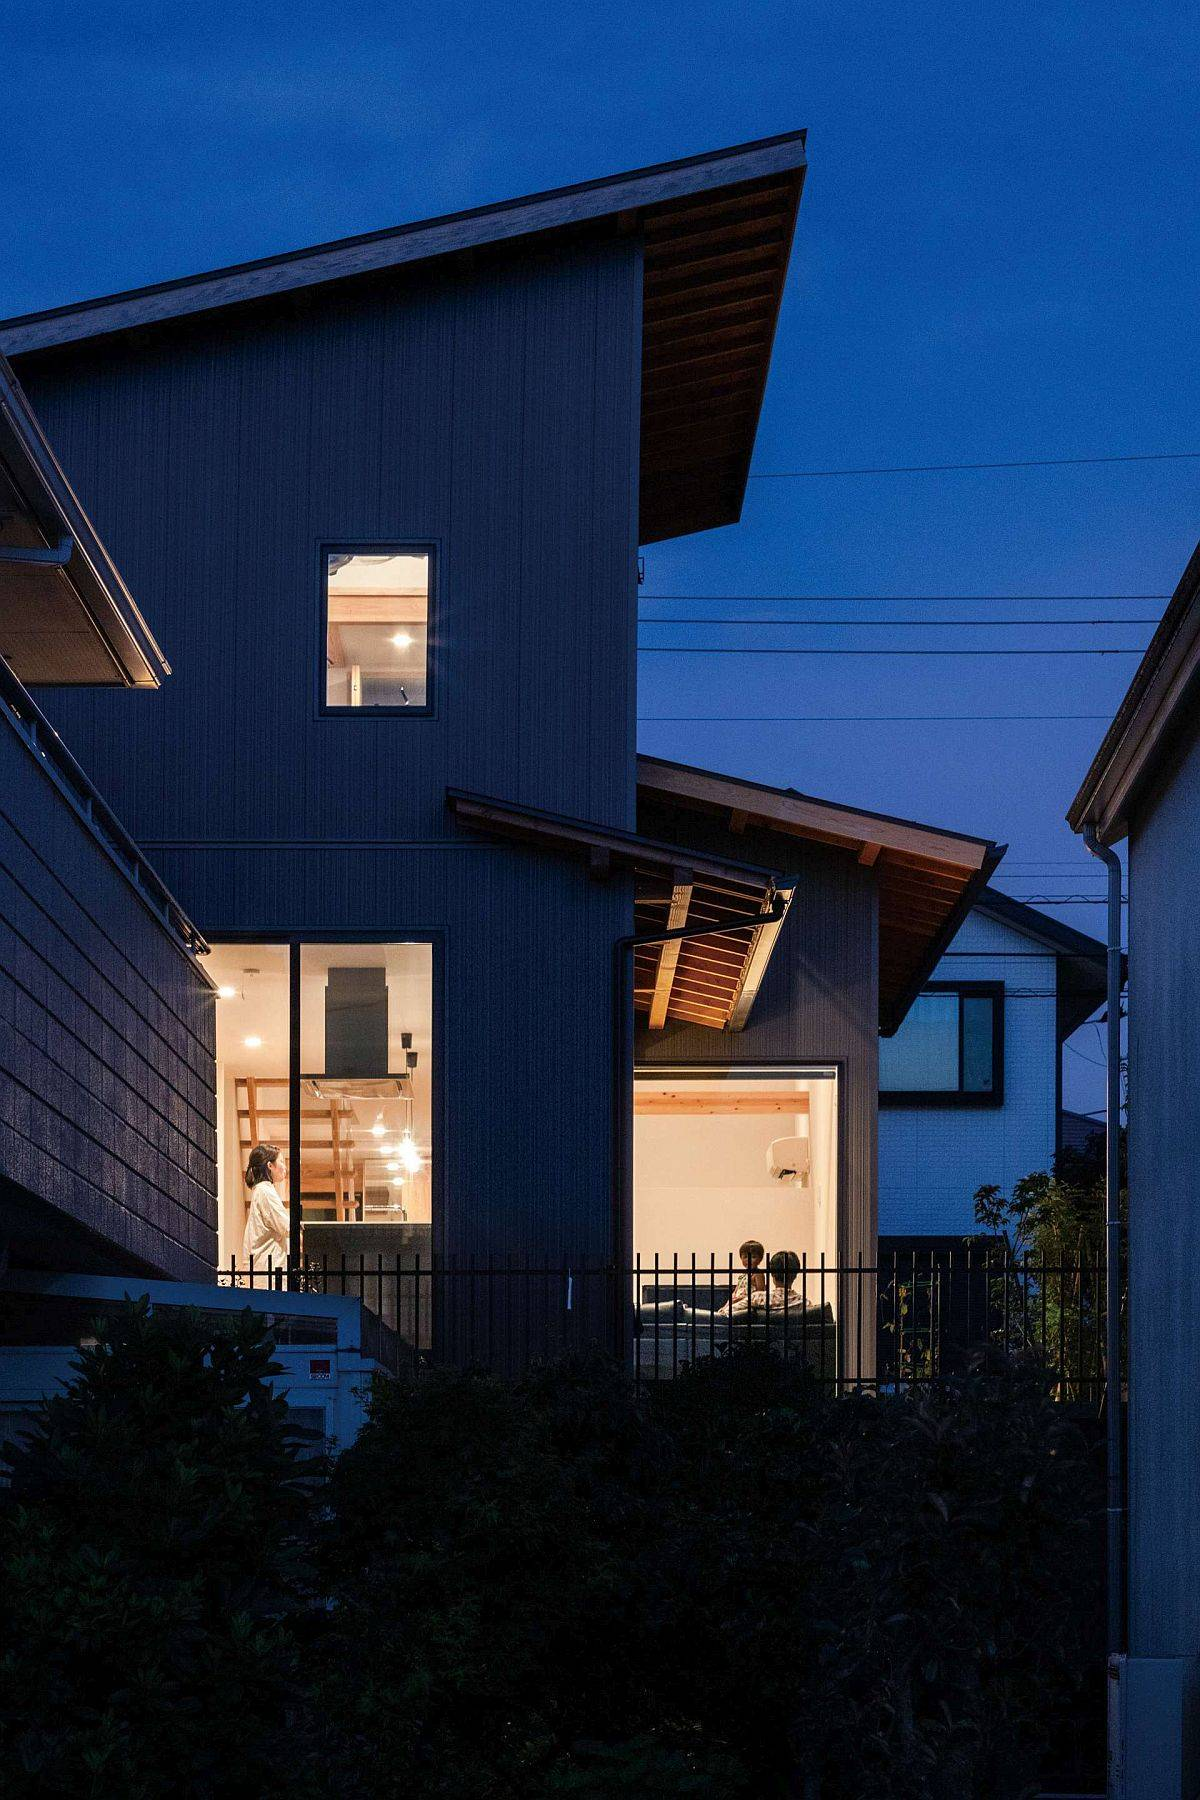 View-of-the-modern-Japanese-home-from-the-street-90902